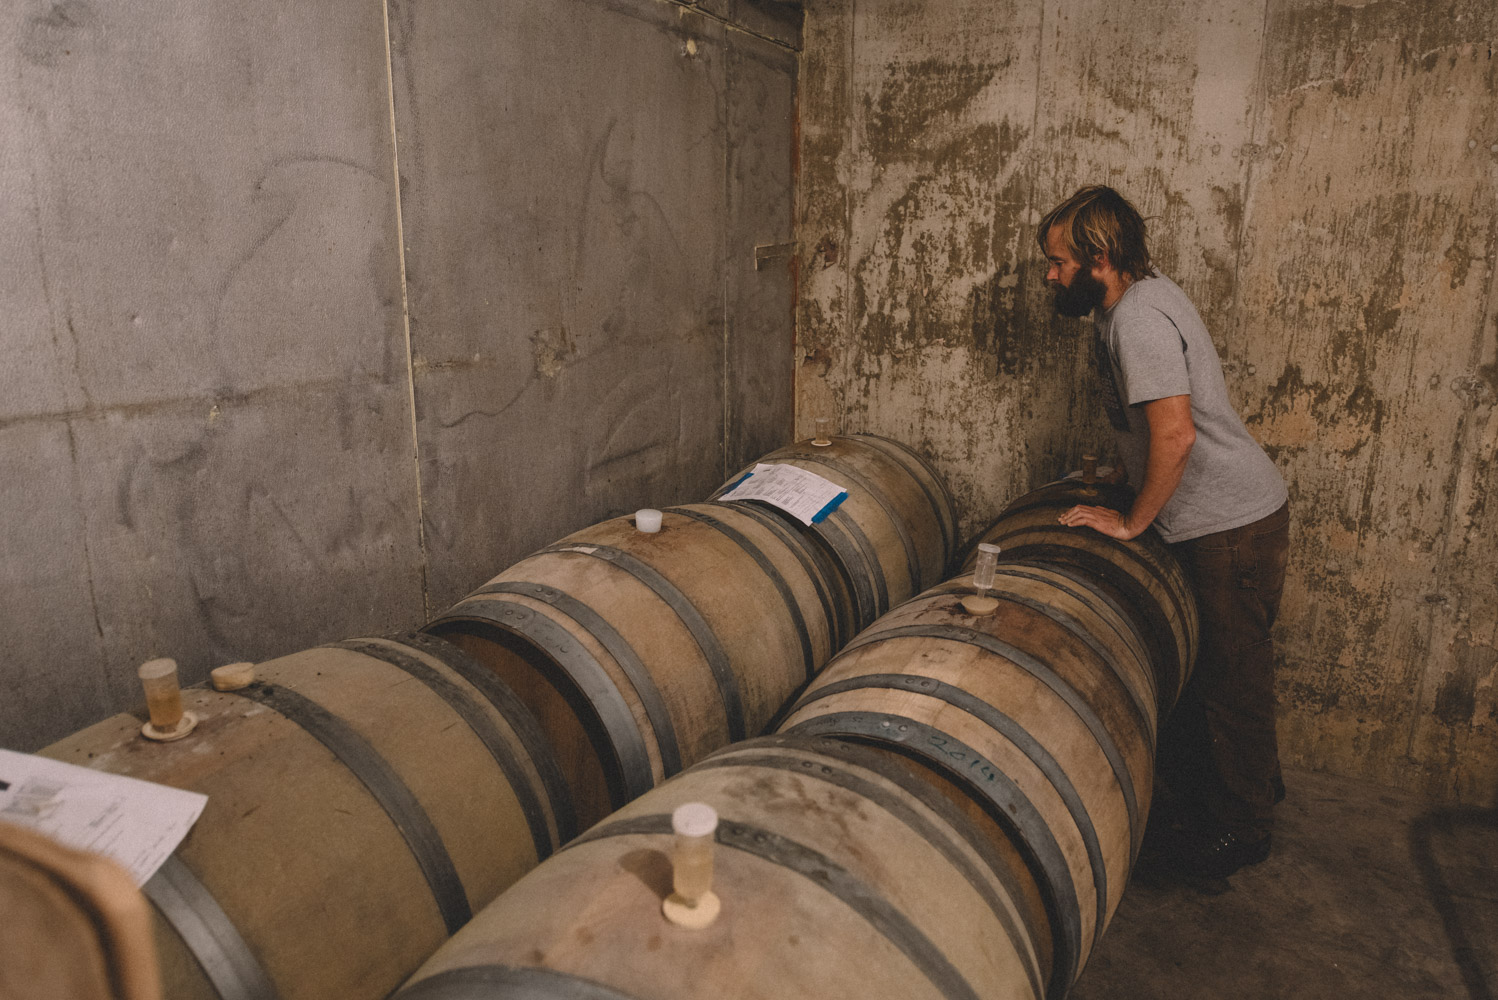 Scratch-Brewing-Co-Foraging-Carbondale-Ava-Illinois-Good-Beer-Hunting-Matt-Sampson-Photography-barrels.jpg